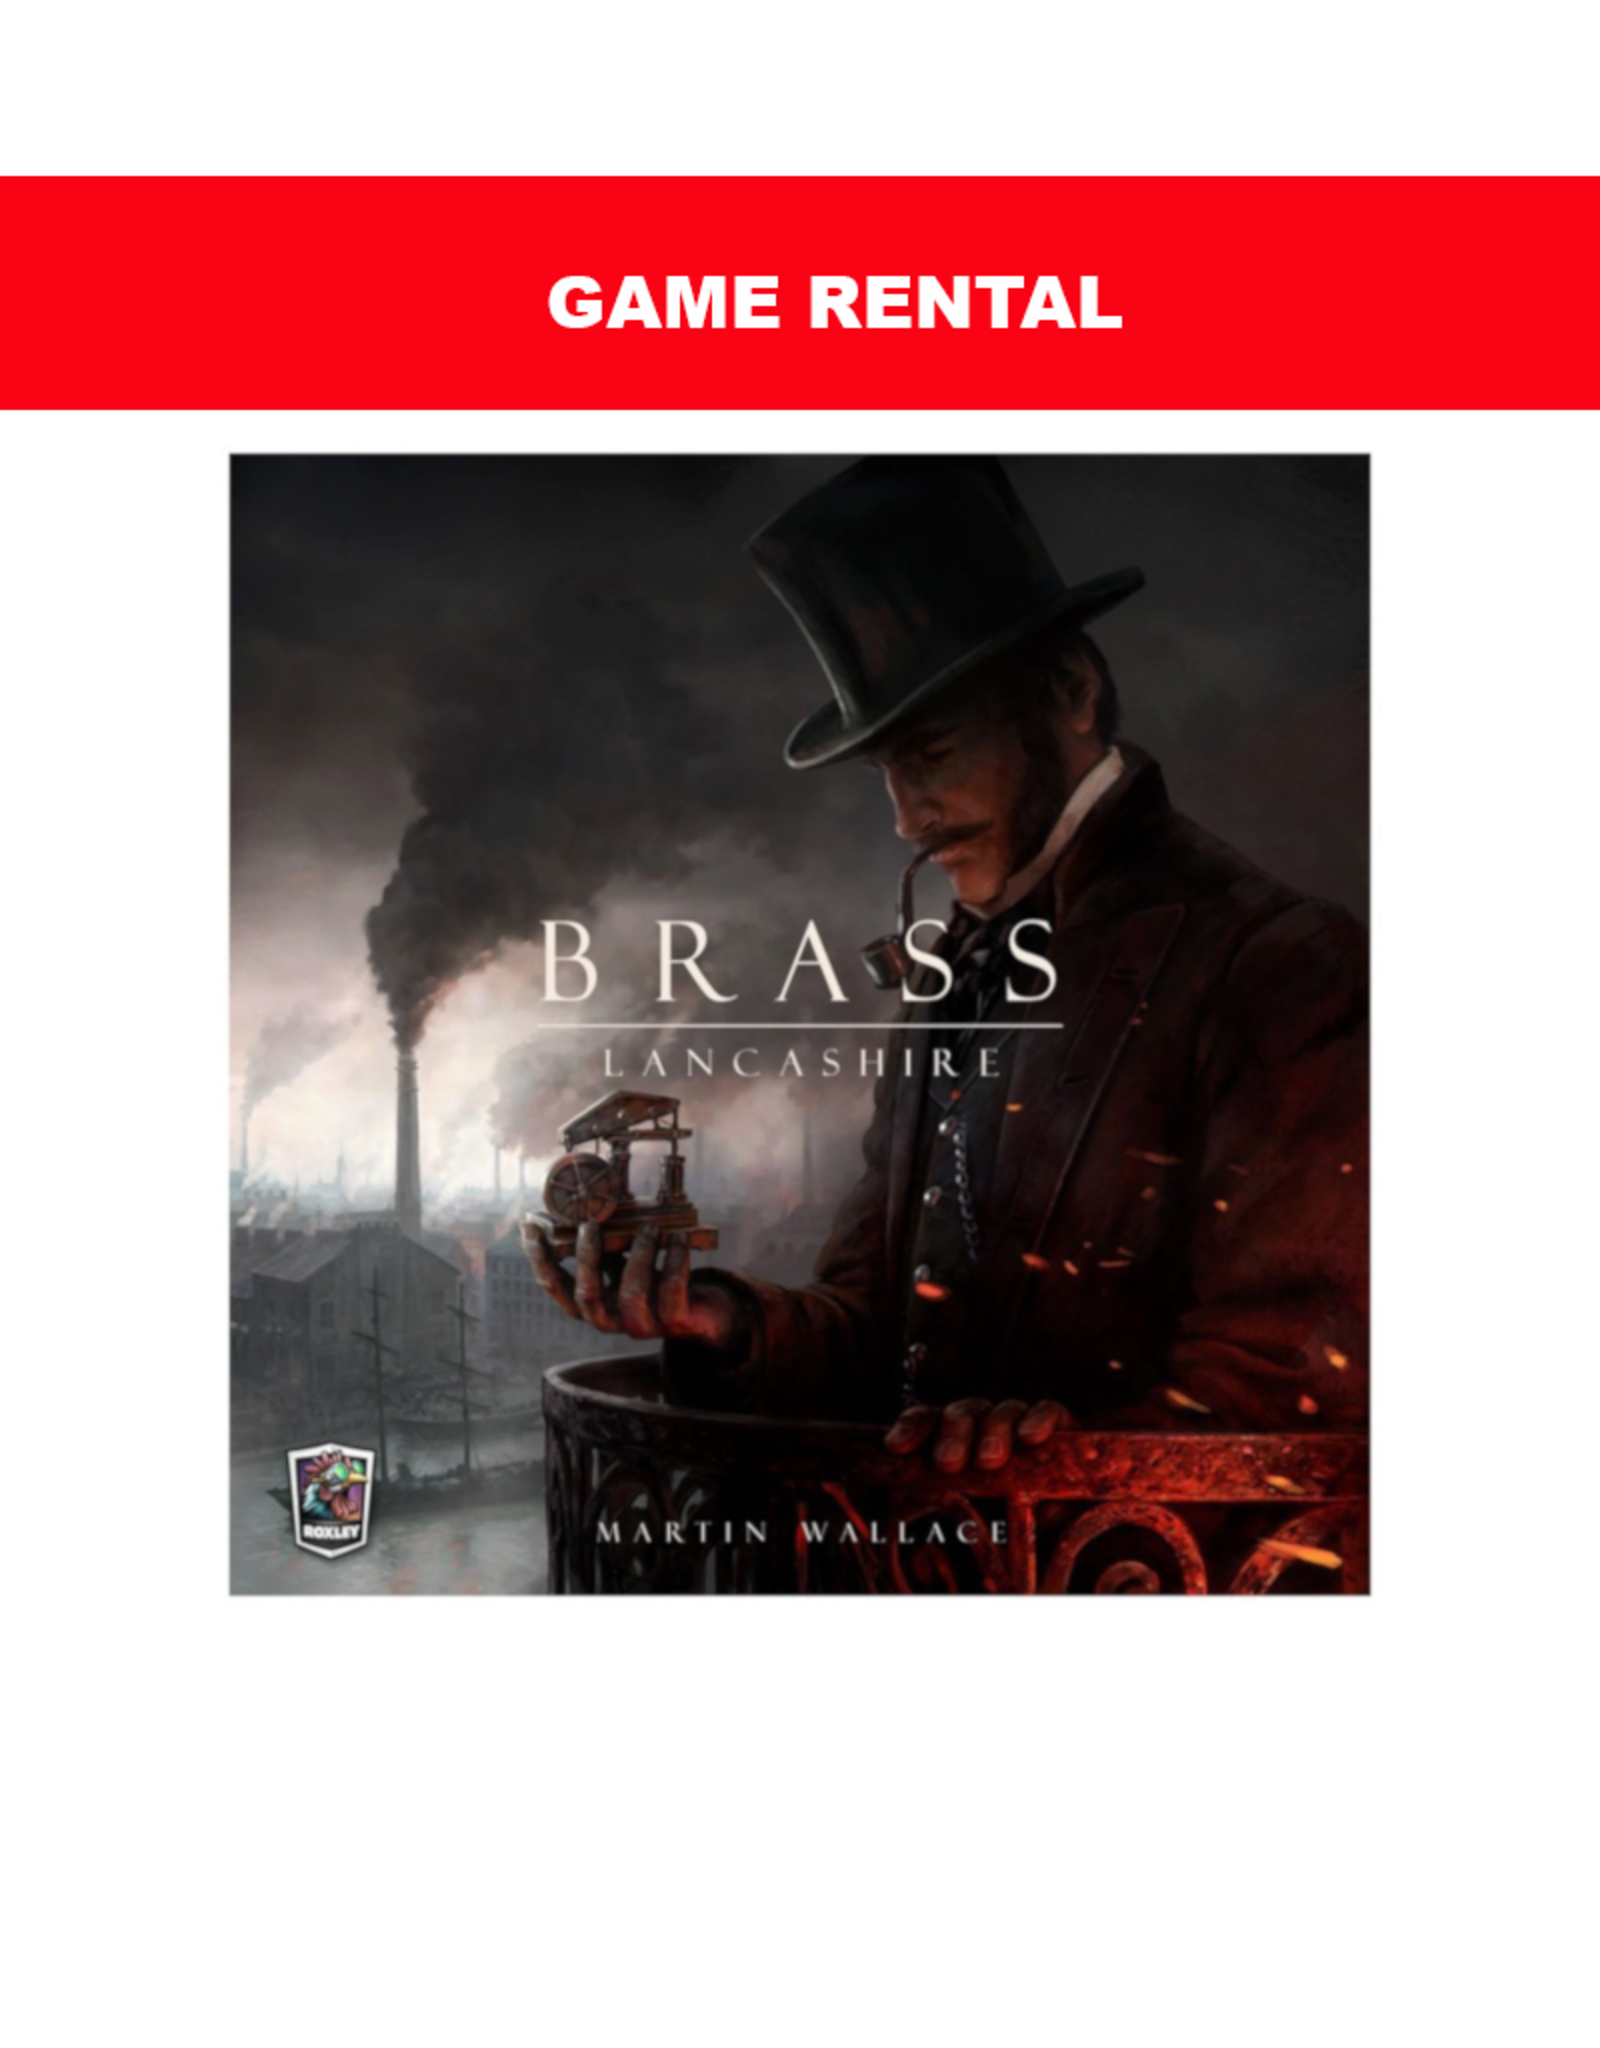 Roxley Games (RENT) Brass Lancashire for a Day. Love It! Buy It!